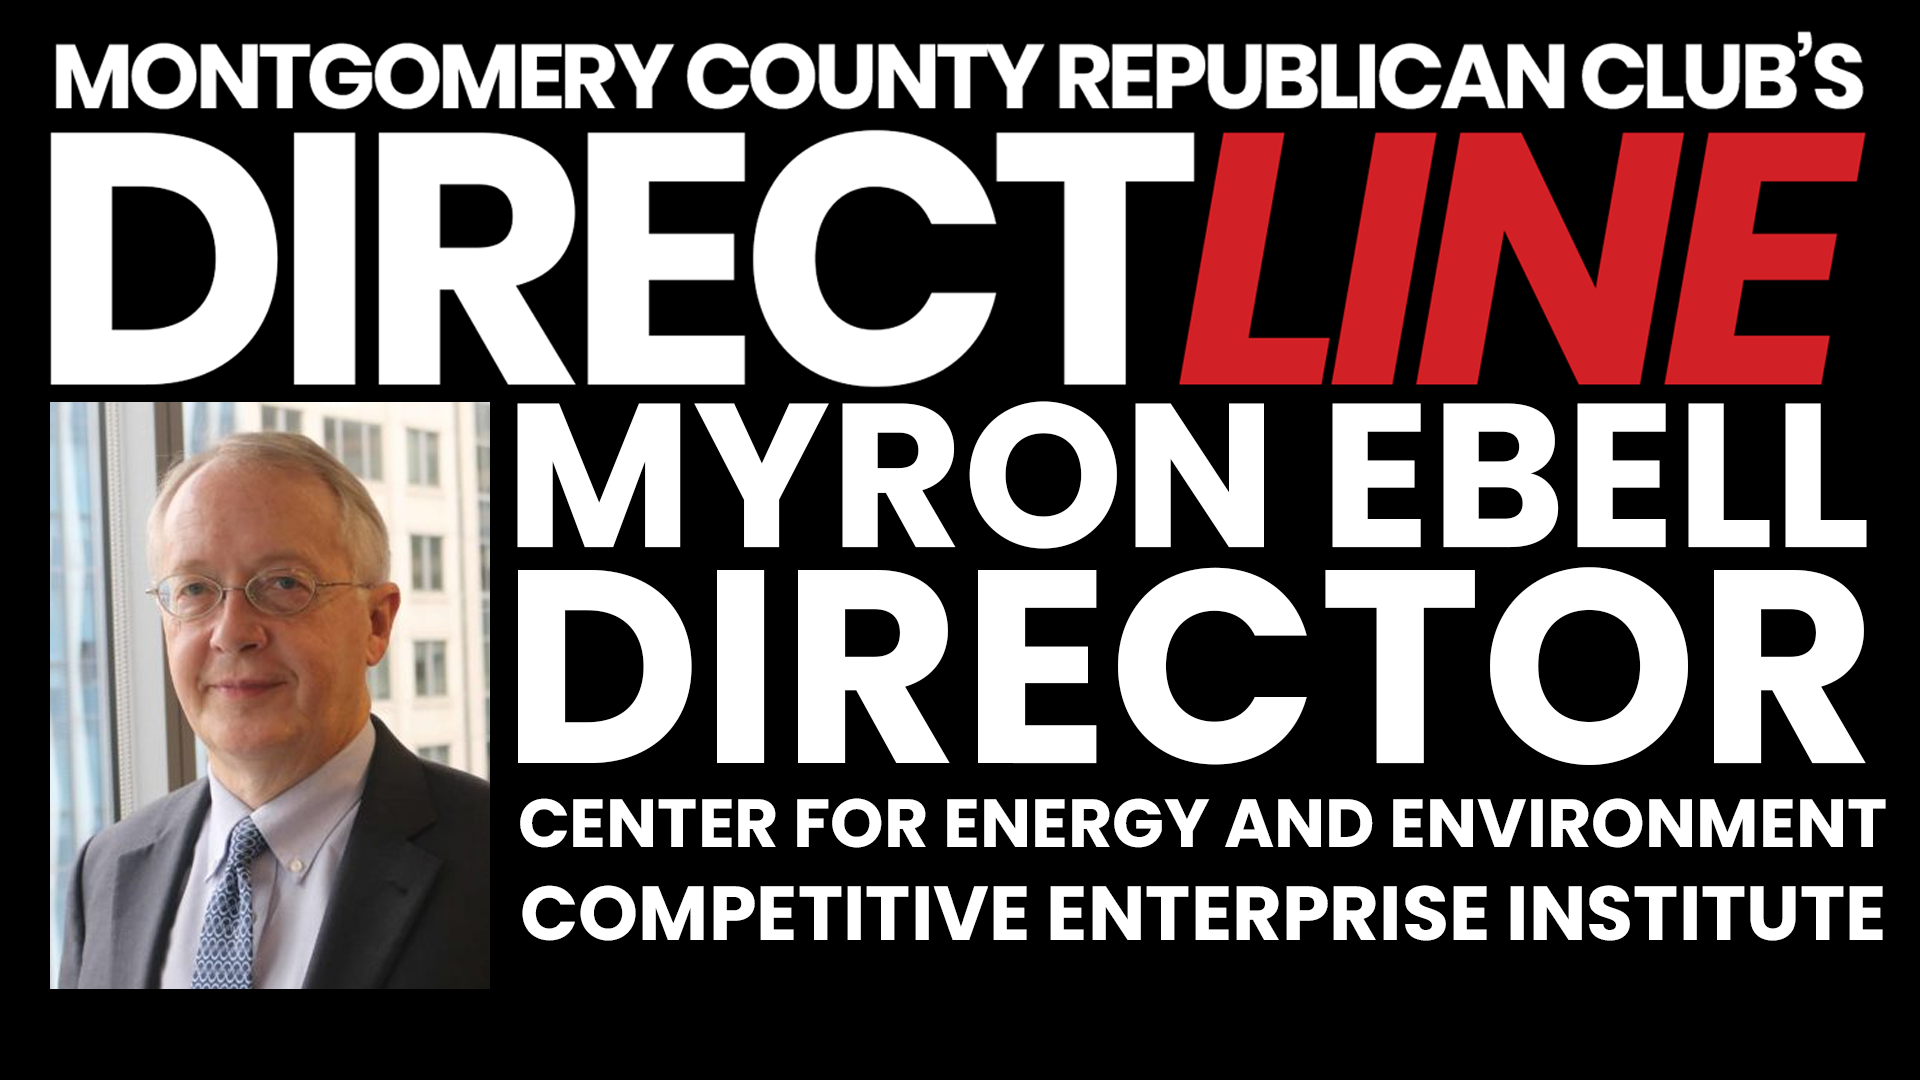 Myron Ebell, Director, Center for Energy and Environment